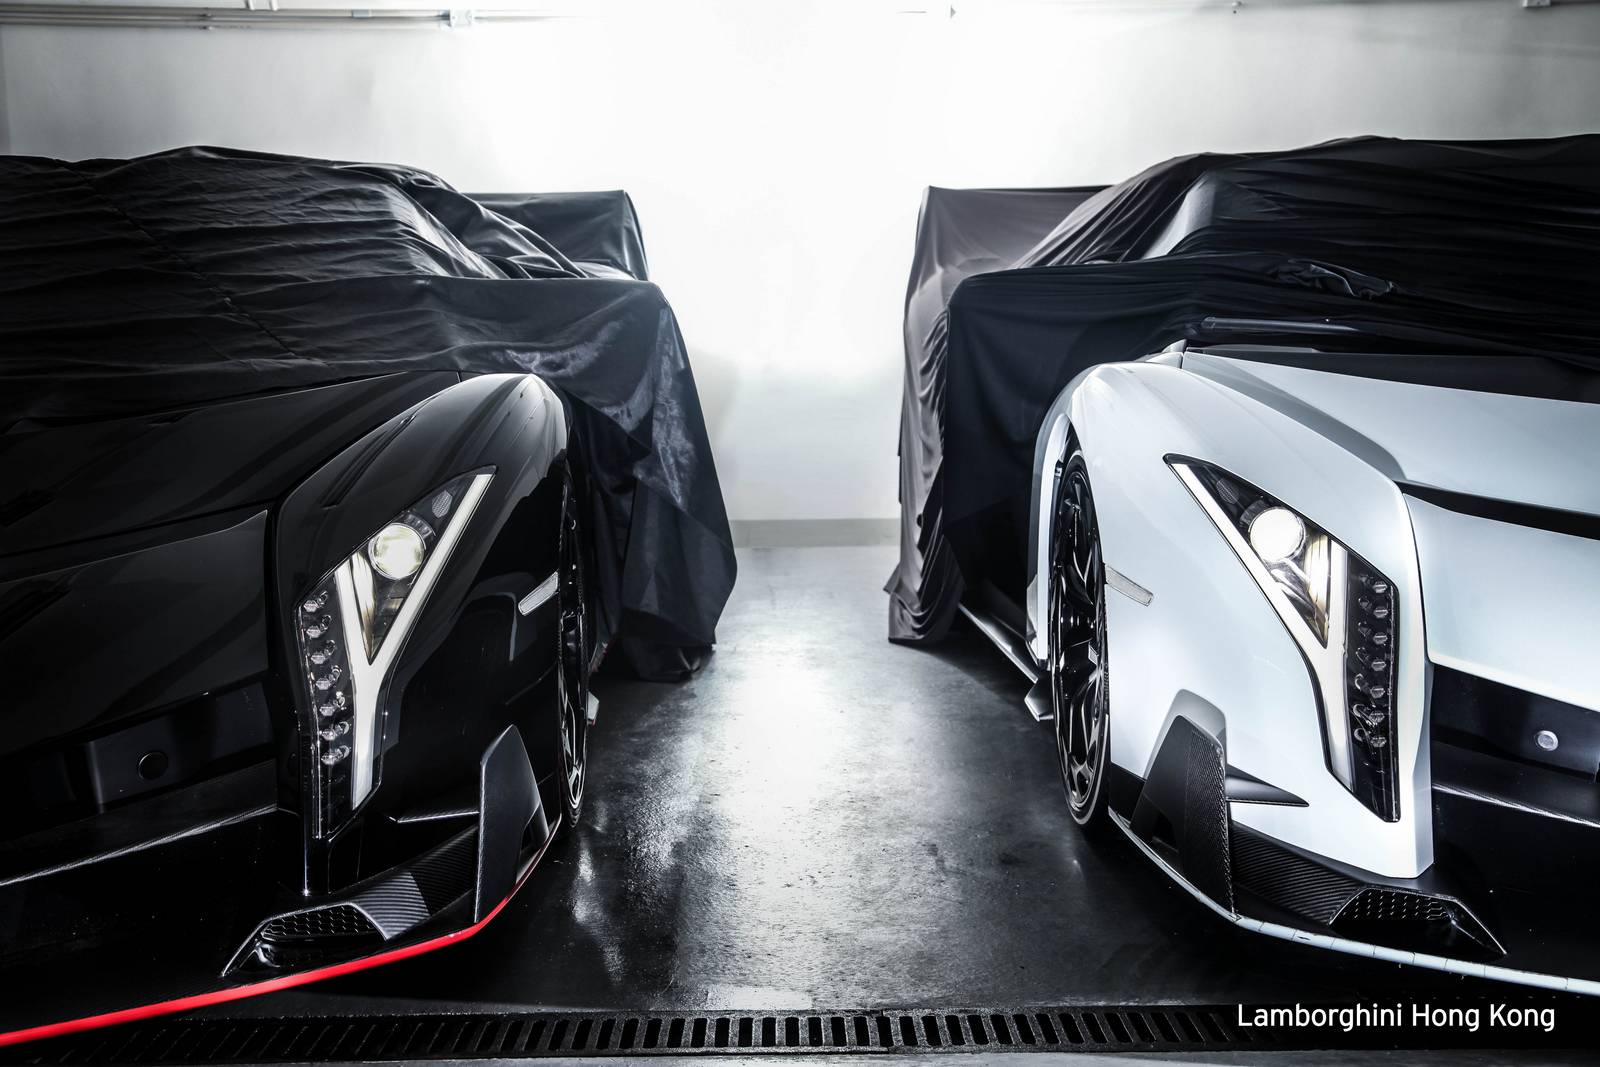 Two New Lamborghini Veneno Roadsters Delivered In Hong